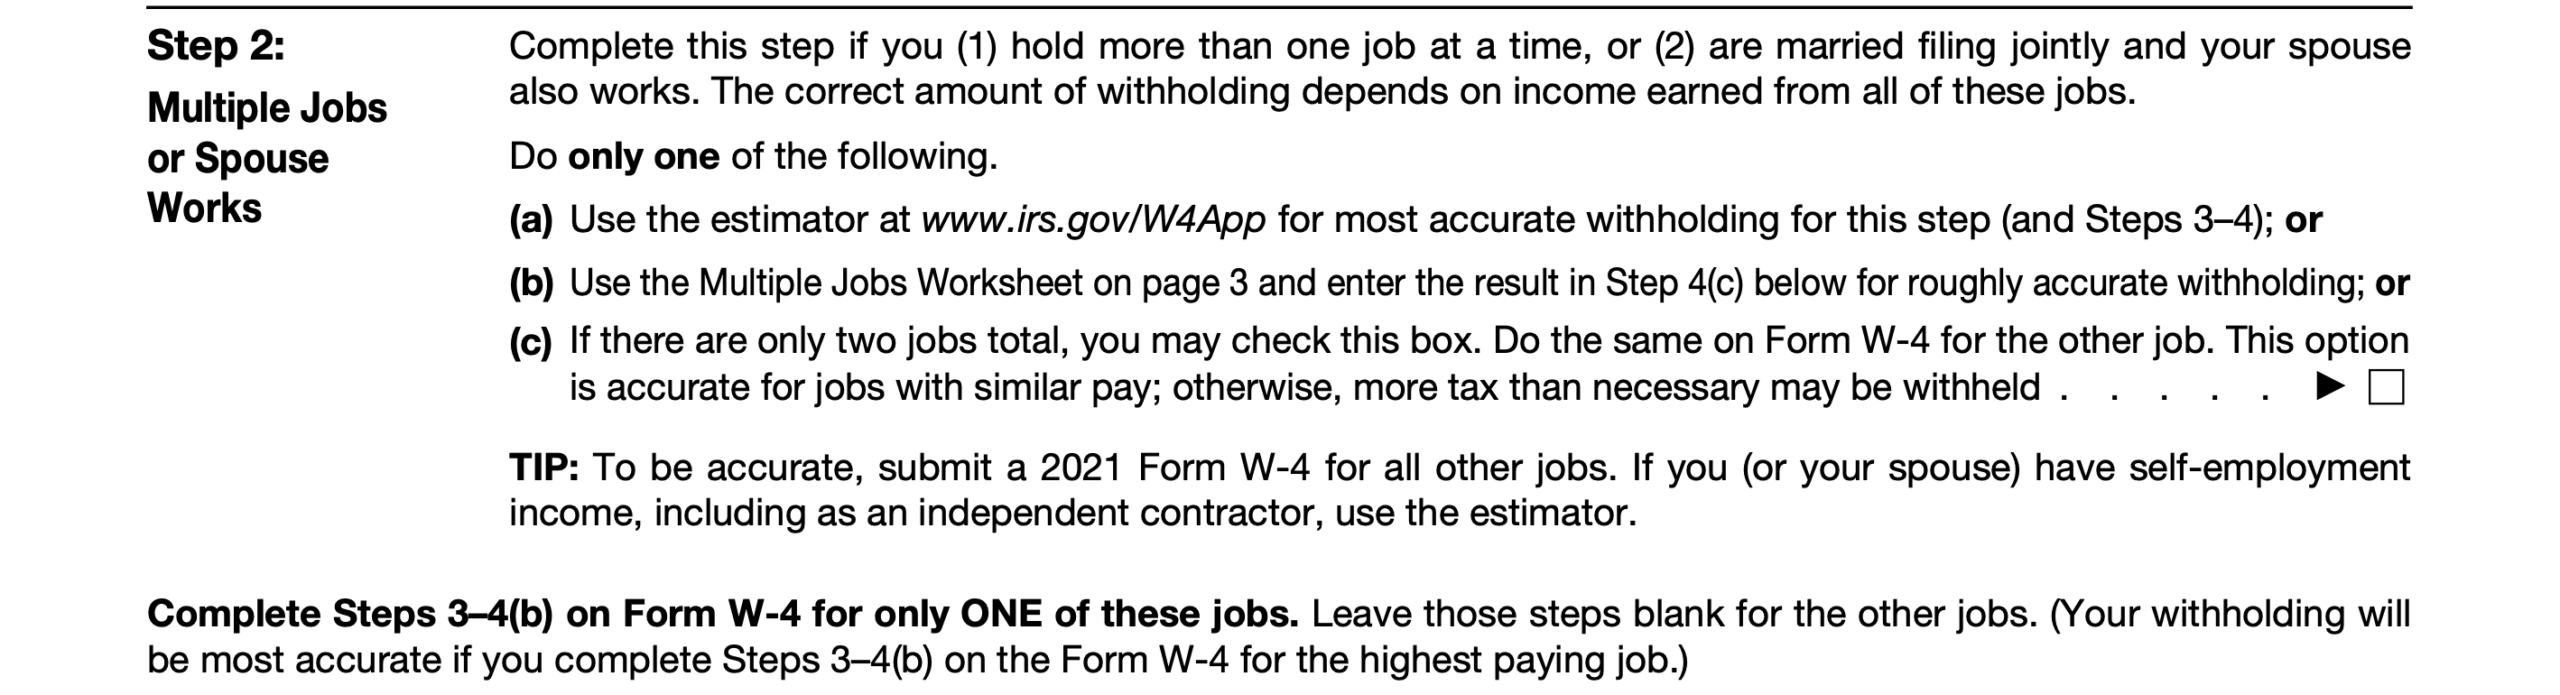 2021 Irs Form W-4: Simple Instructions + Pdf Download with regard to Form W-4 2021